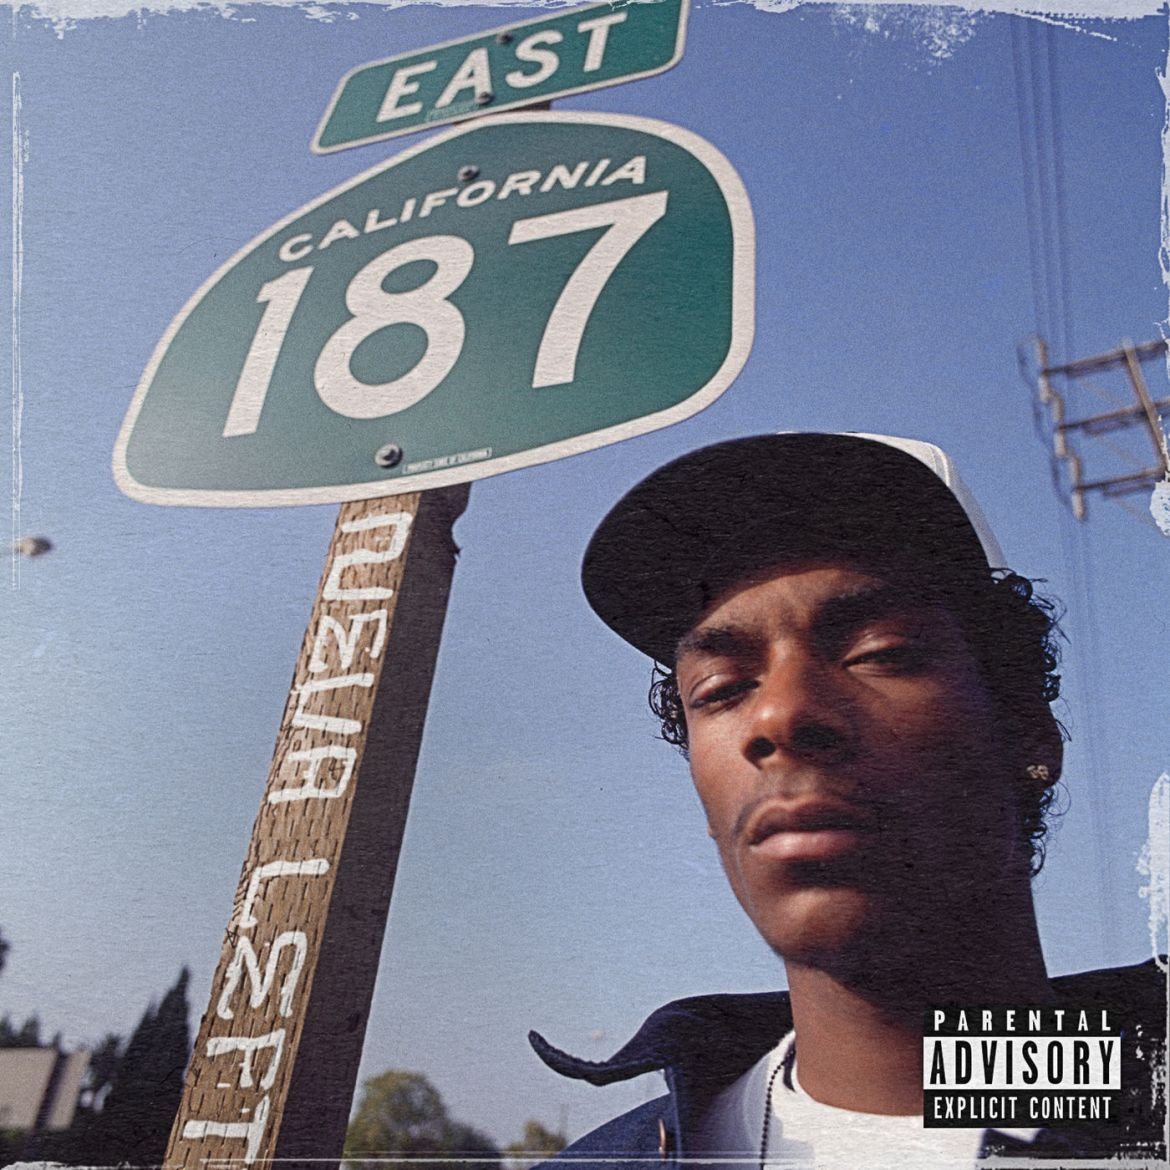 Neva Left by Snoop Dogg | Doggystyle Records / EMPIRE